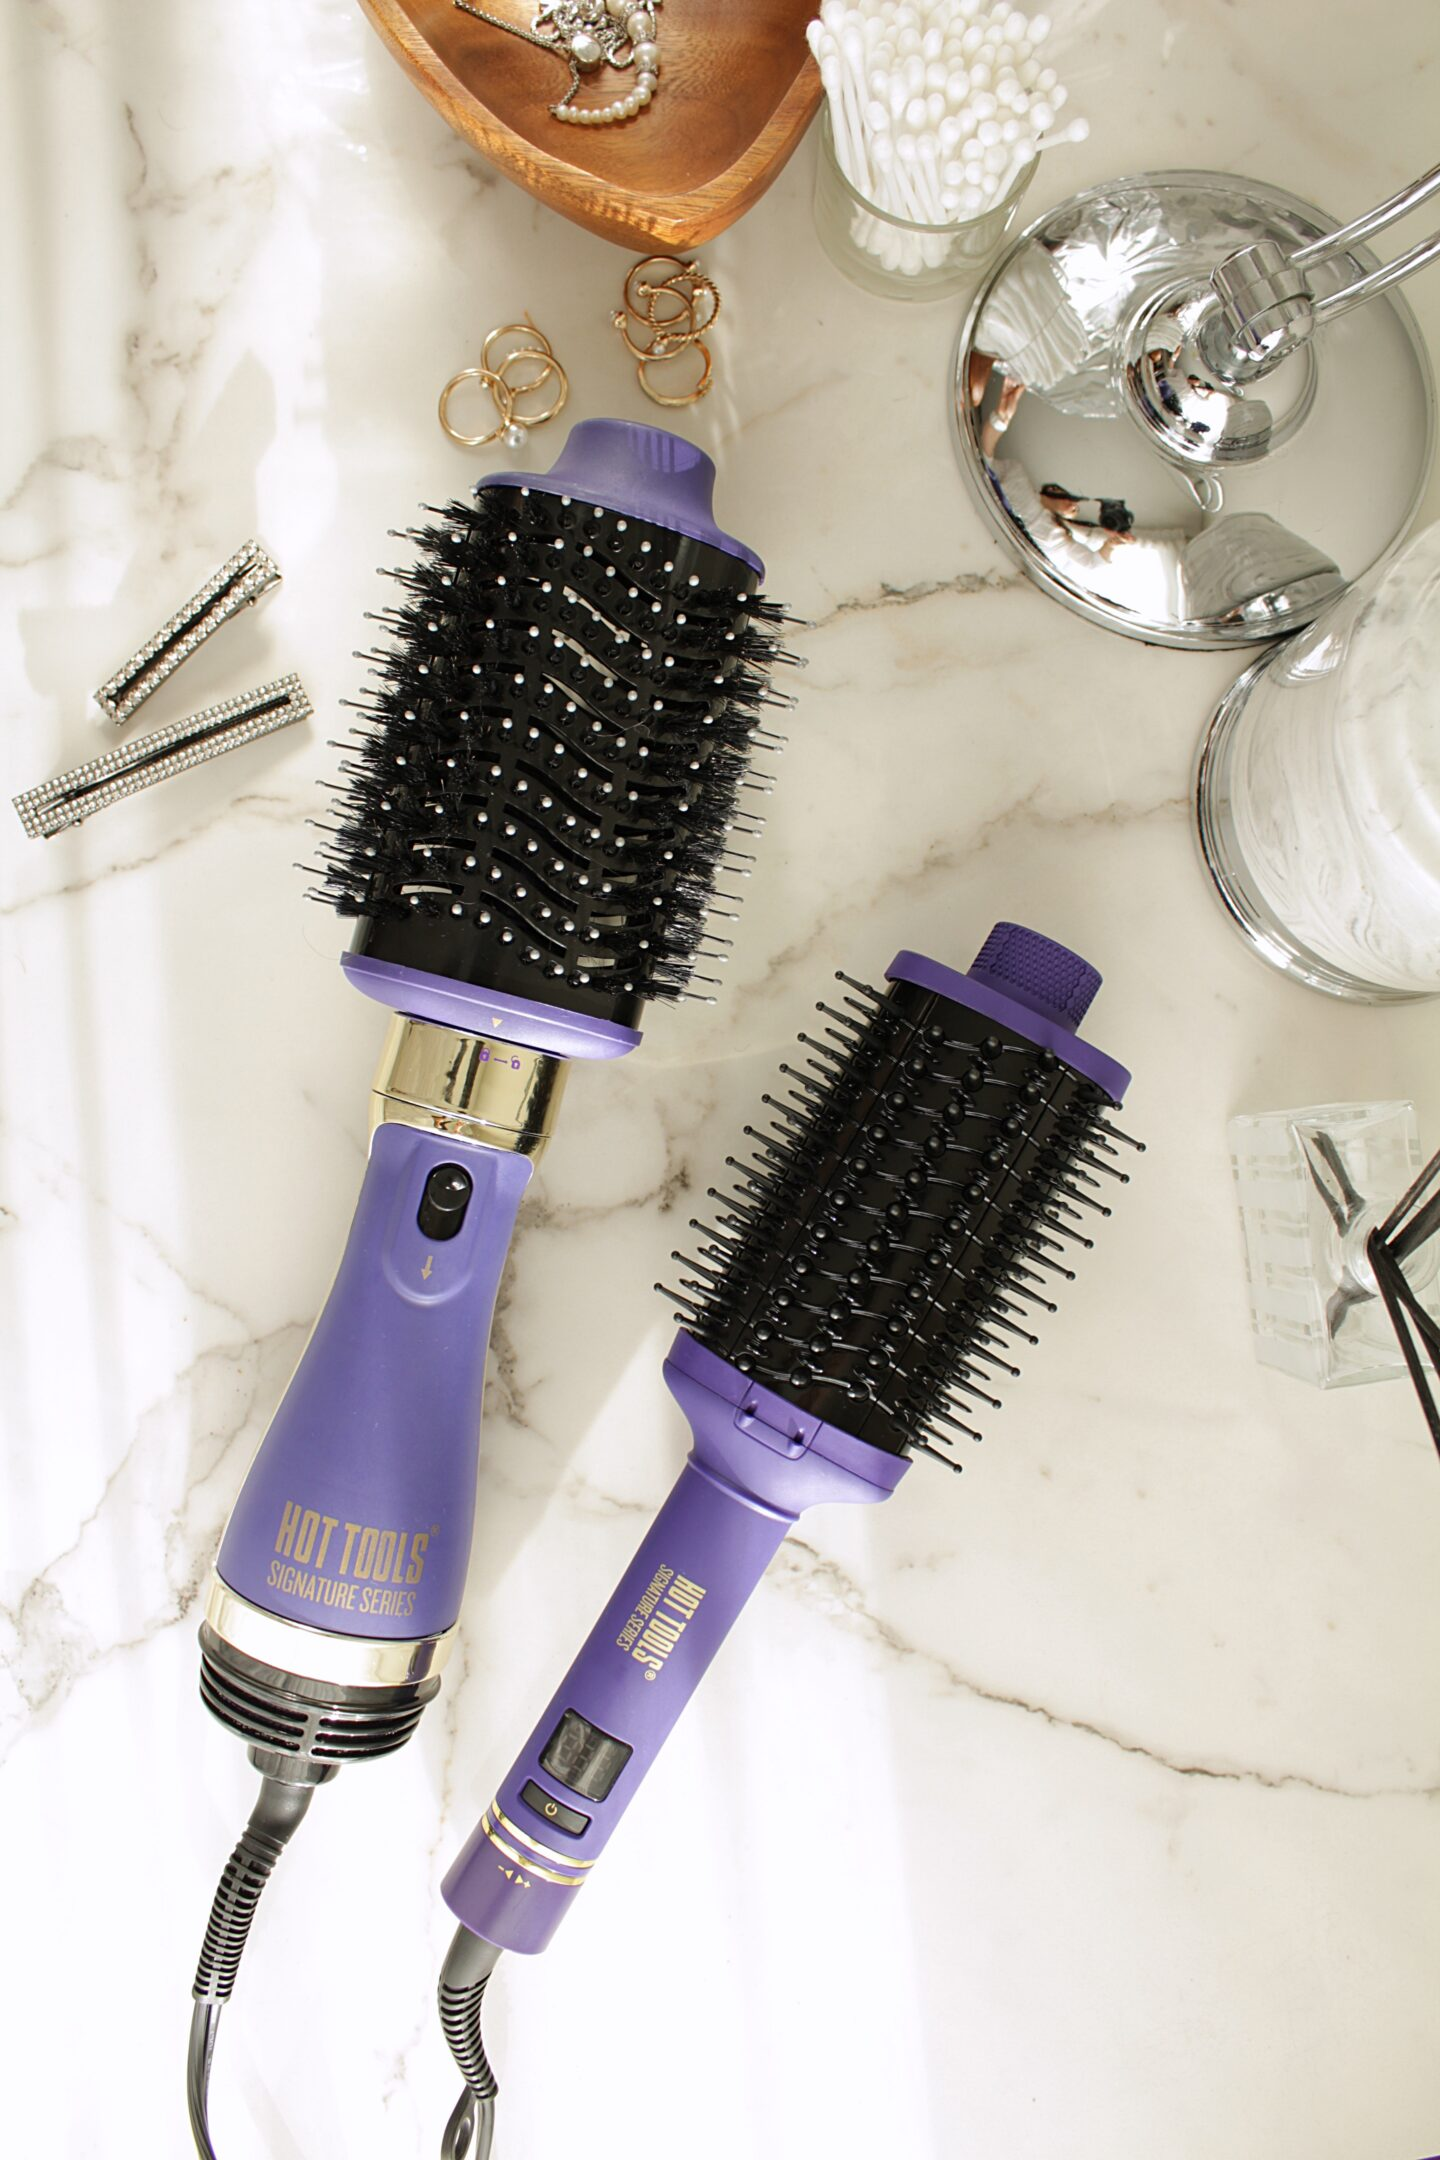 Hot Tools Signature Series | One-Step Blowout Detachable Volumizer and The Ultimate Heated Brush Styler